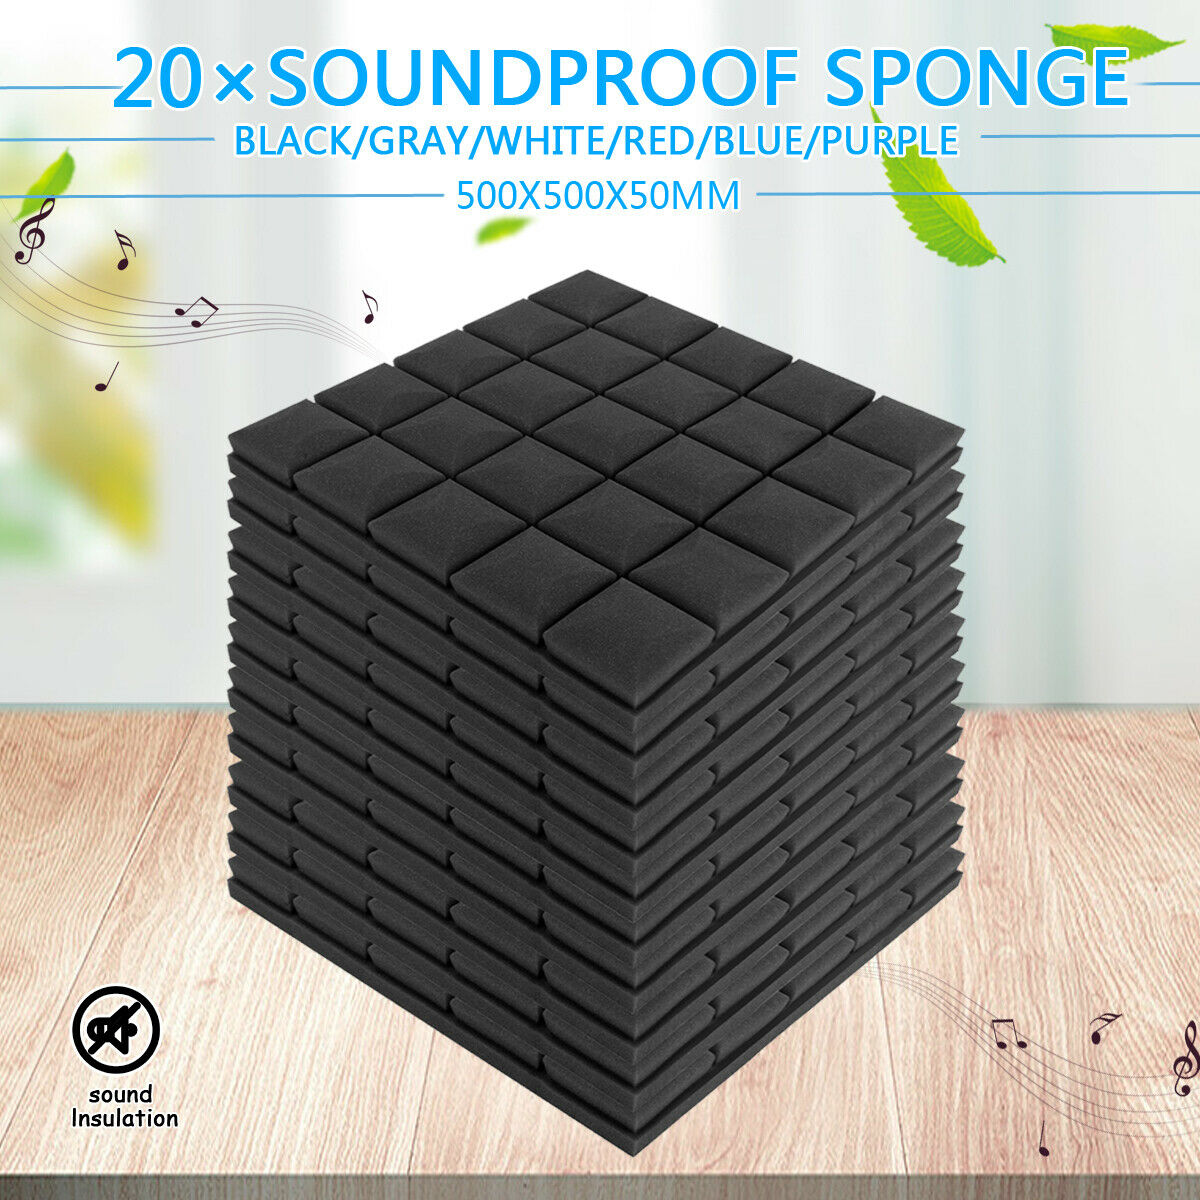 20Pc Mushroom Acoustic Foam Sound Stop Absorption Sponge Soundproof Foam Panels